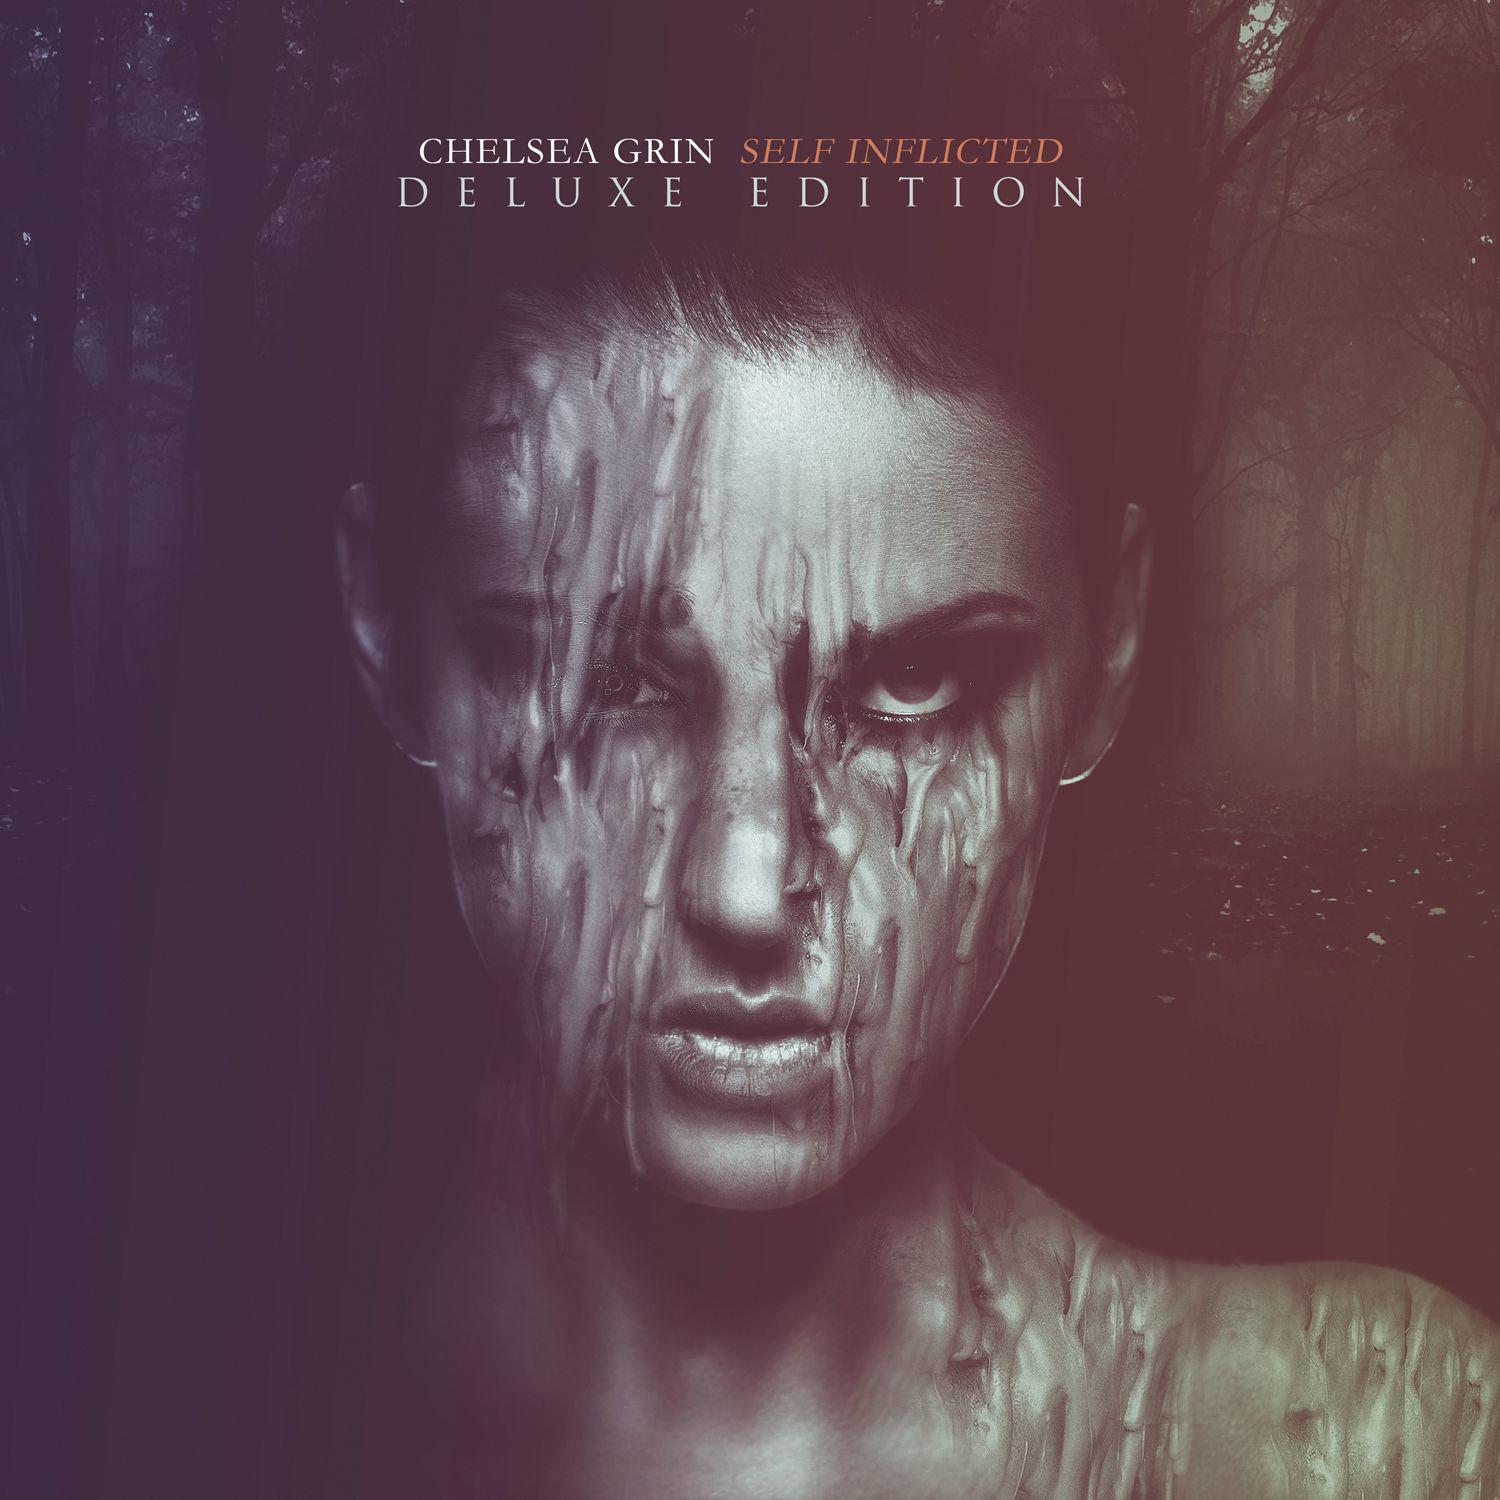 Chelsea Grin - Self Inflicted (Deluxe Edition) (2017)